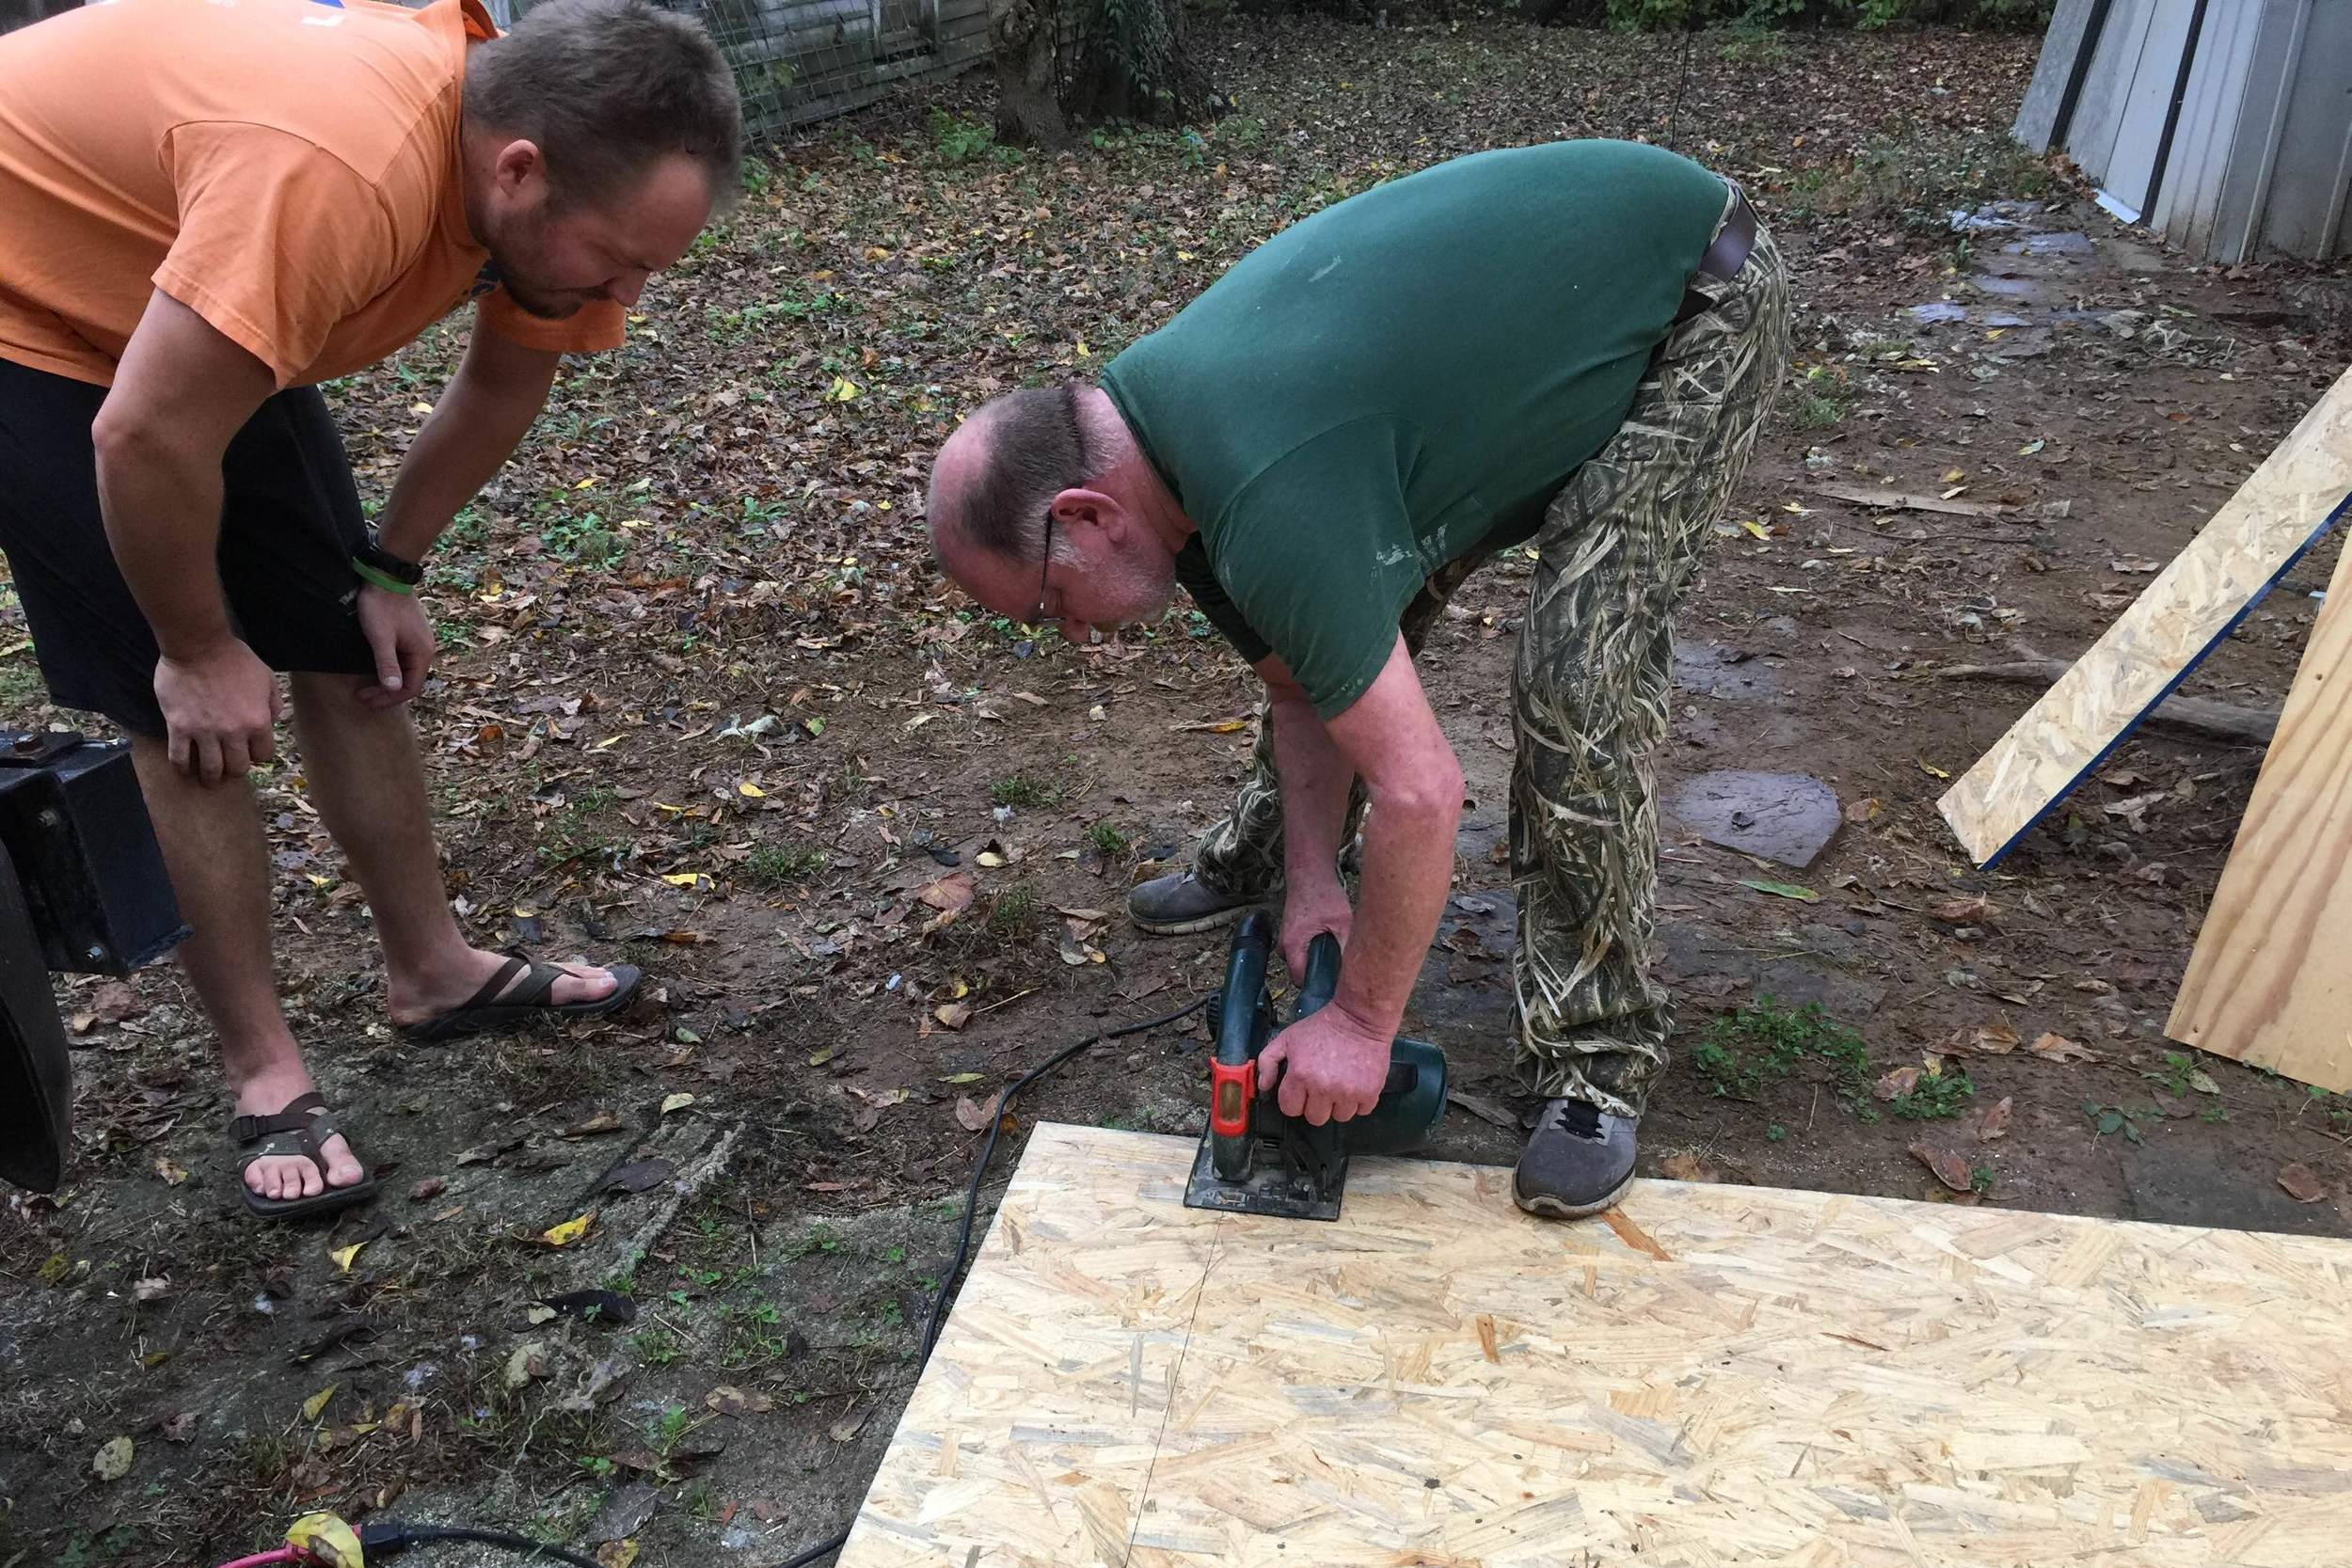 Christian let Willie show him how to cut a straight line with a skill saw.